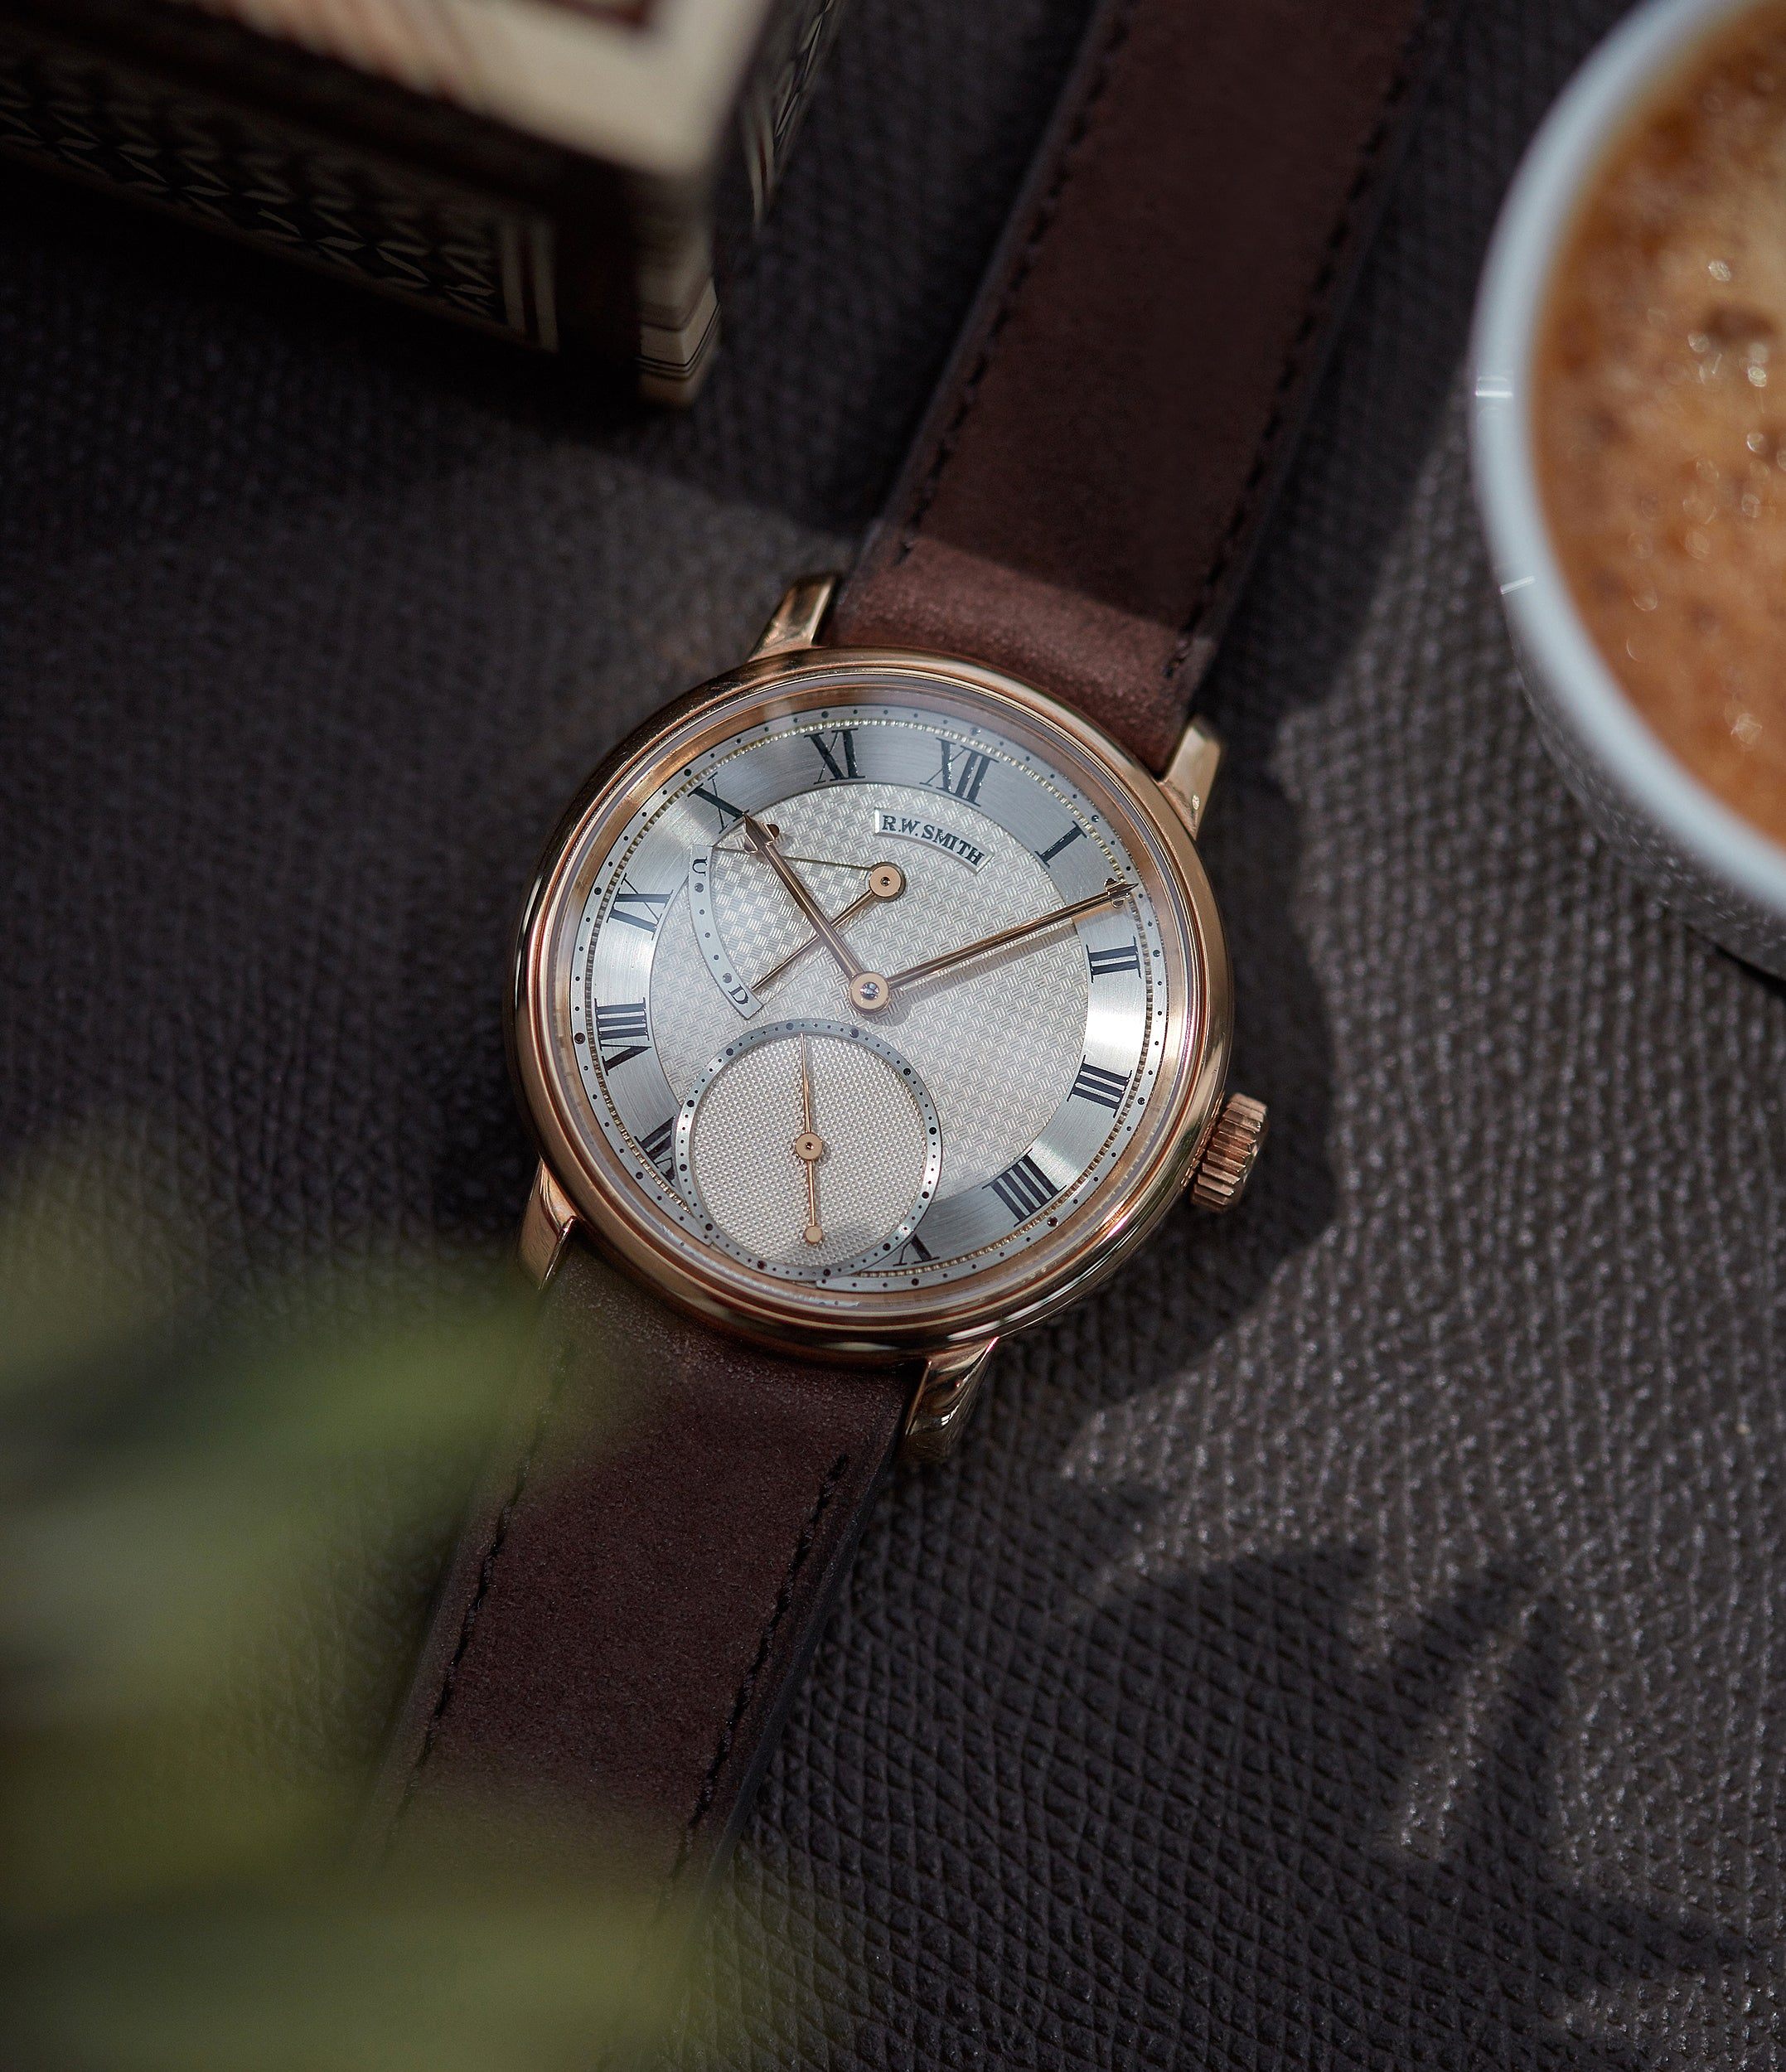 Series II Roger Smith rose gold time-only dress watch British for sale online A Collected Man London